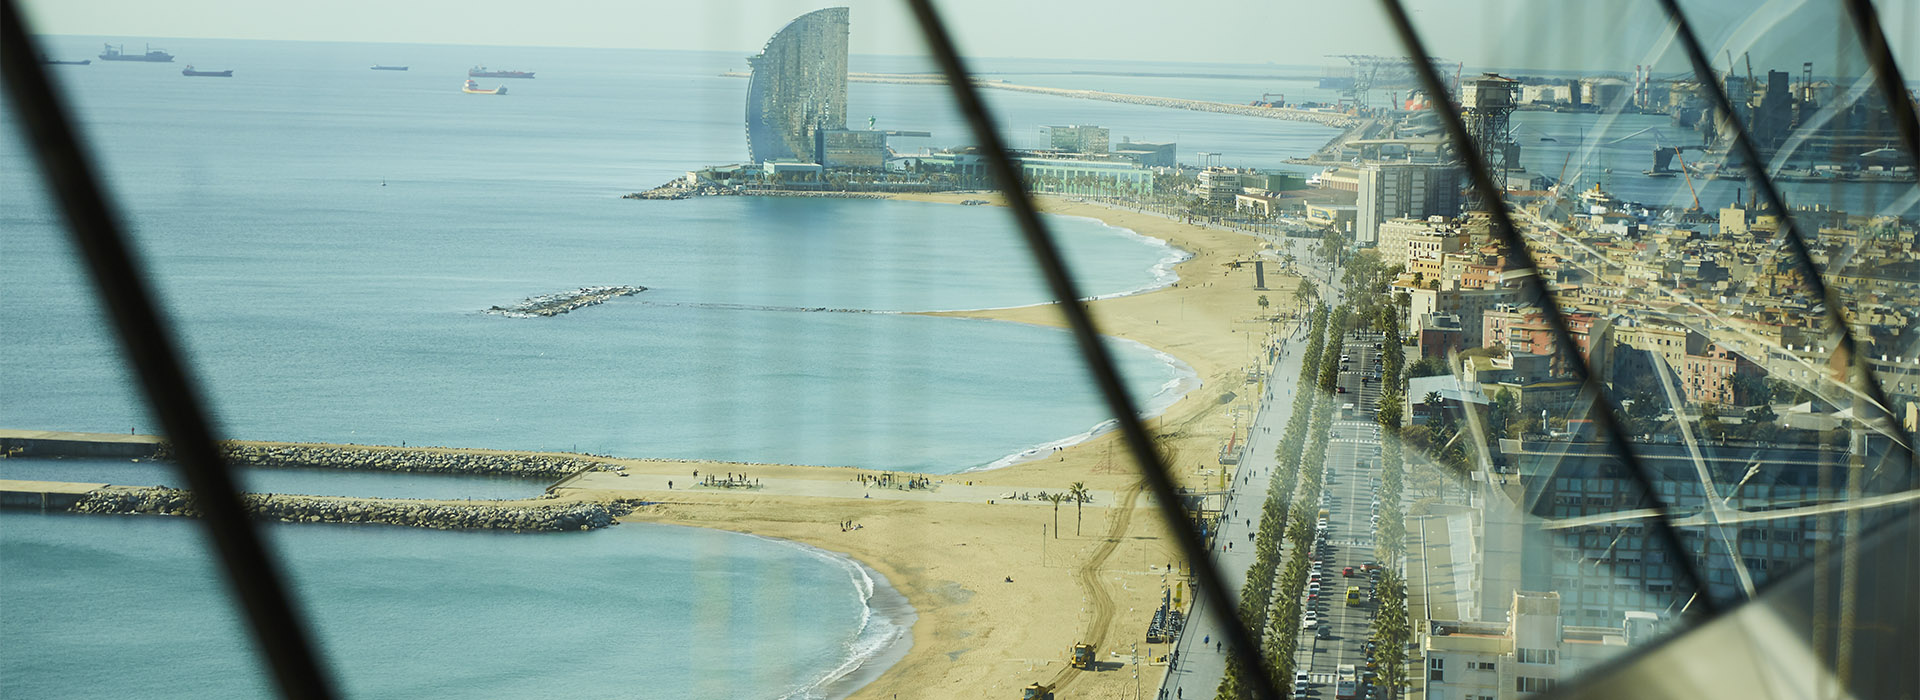 BCN beach through windows 1920x700